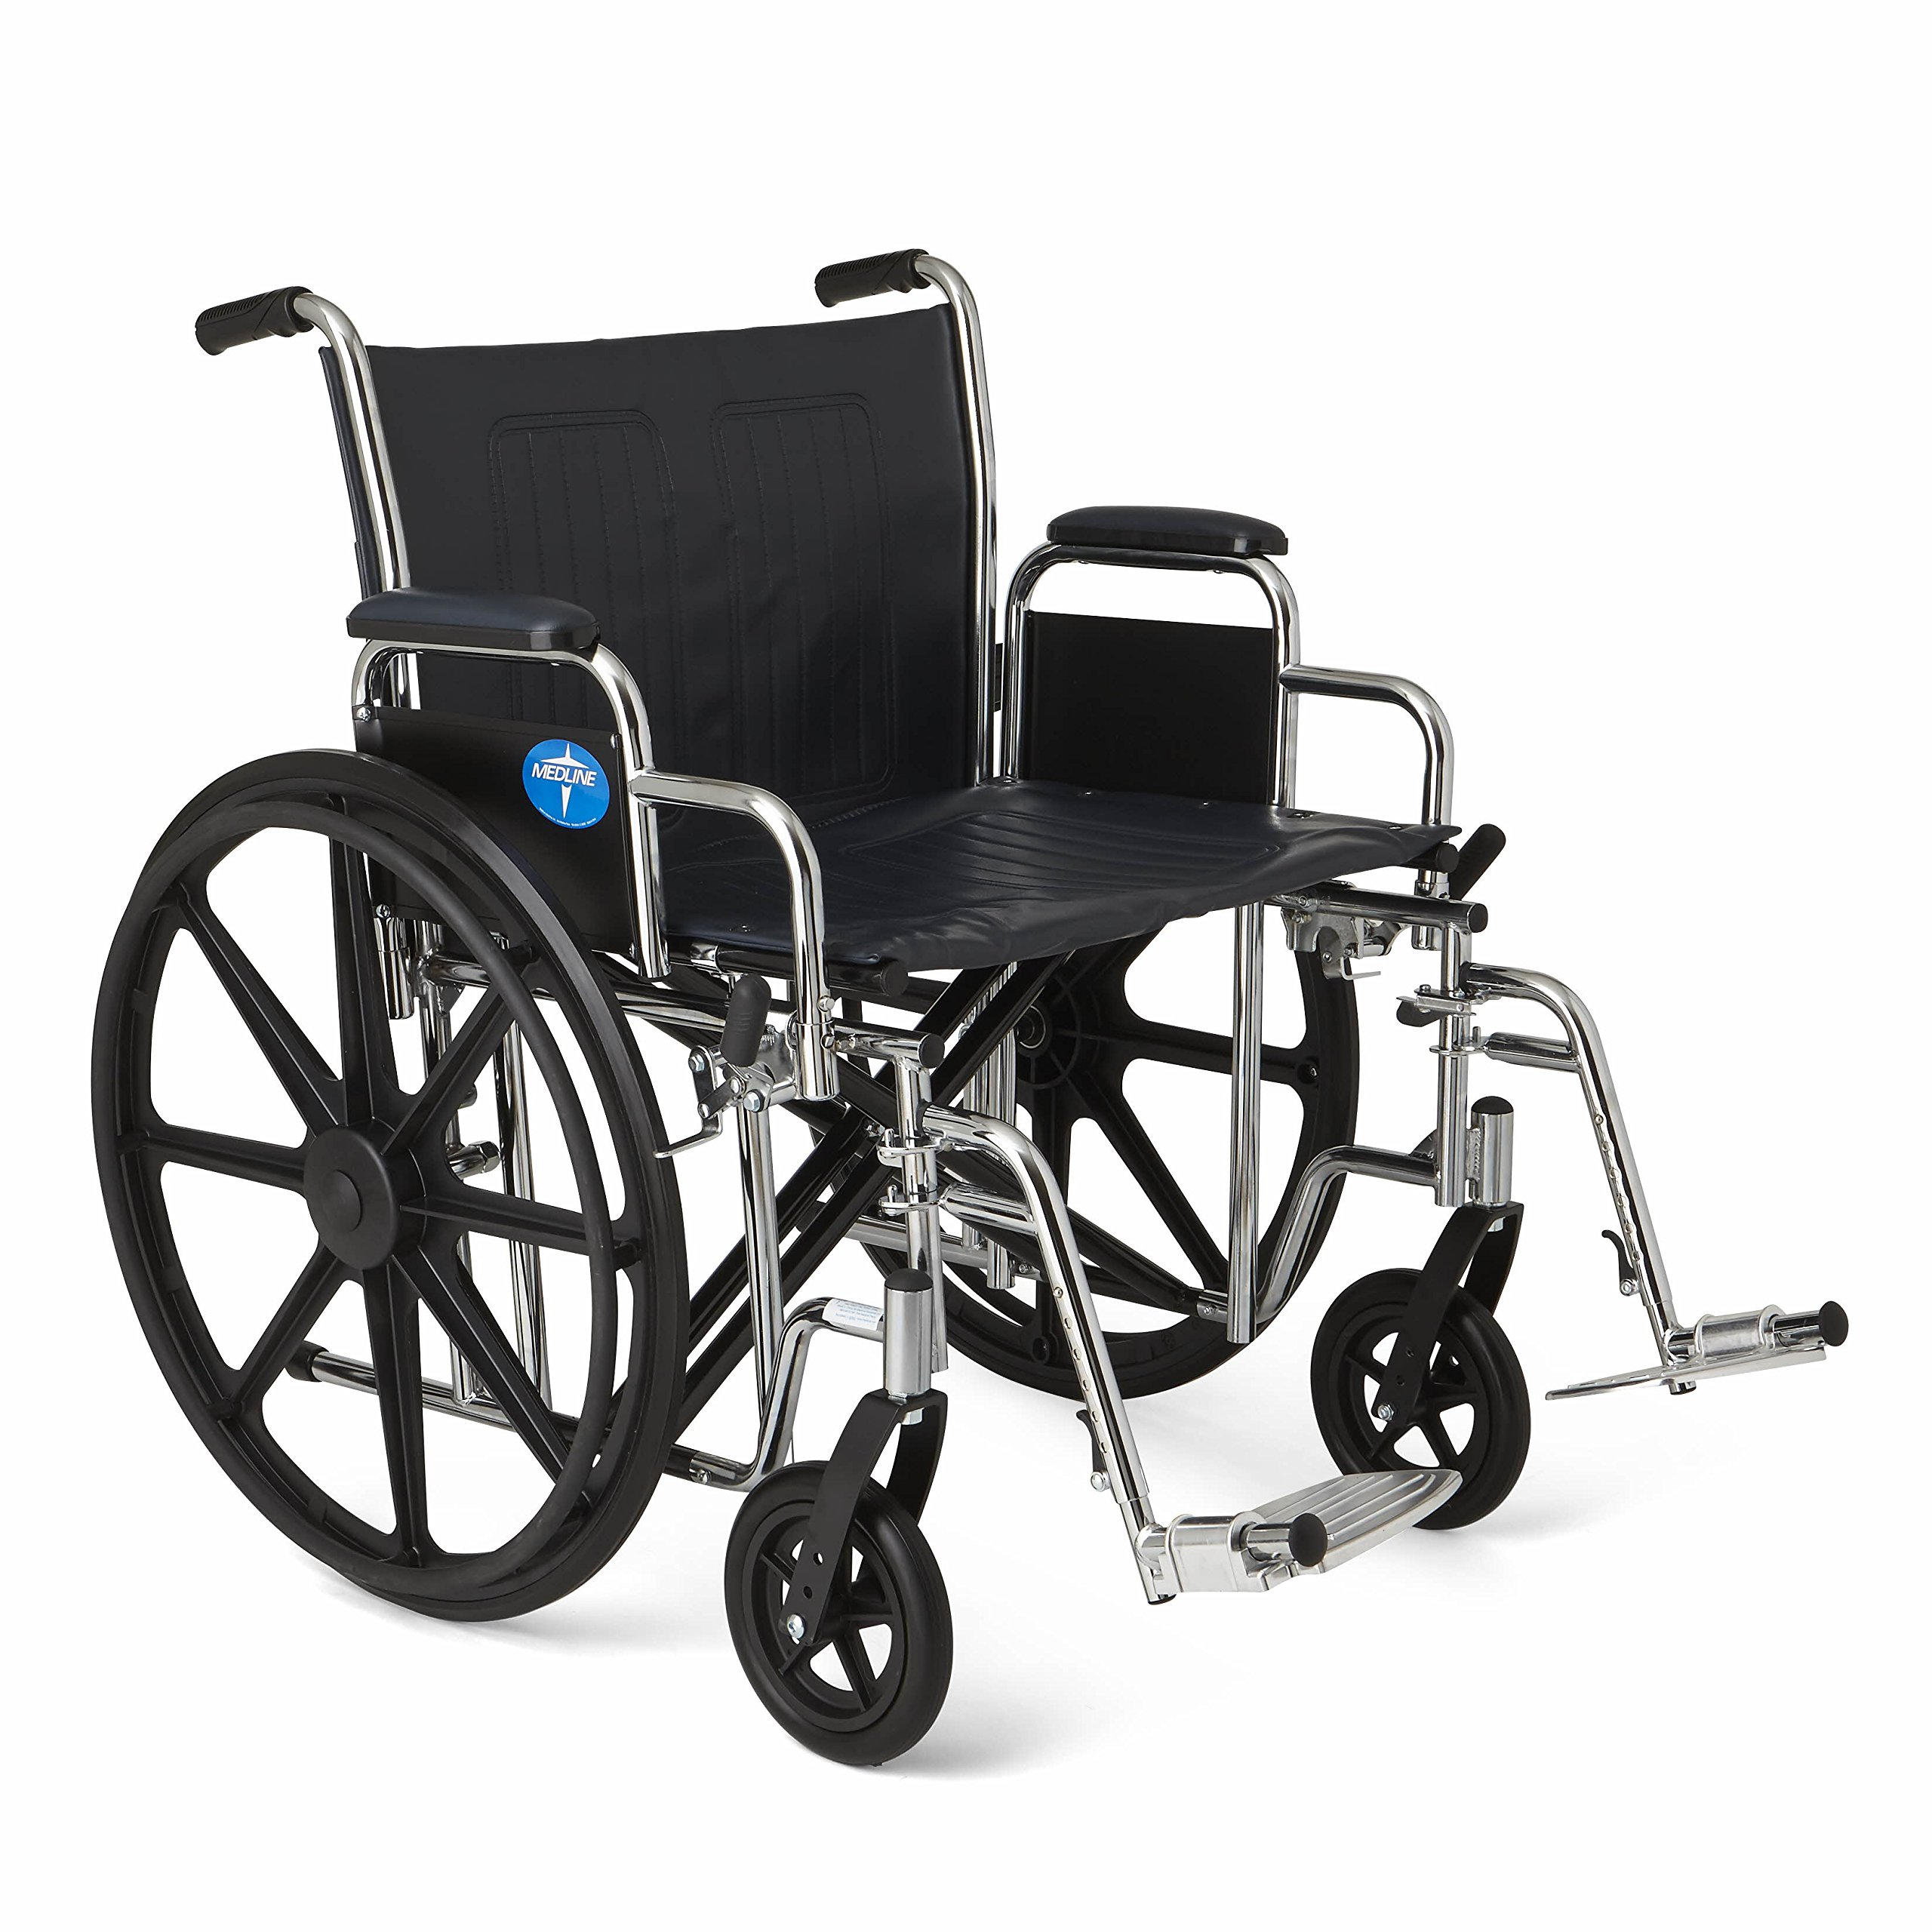 Medline Excel Extra-Wide Wheelchair, 22'' Wide Seat, Desk-Length Removable Arms, Swing Away Footrests, Chrome Frame